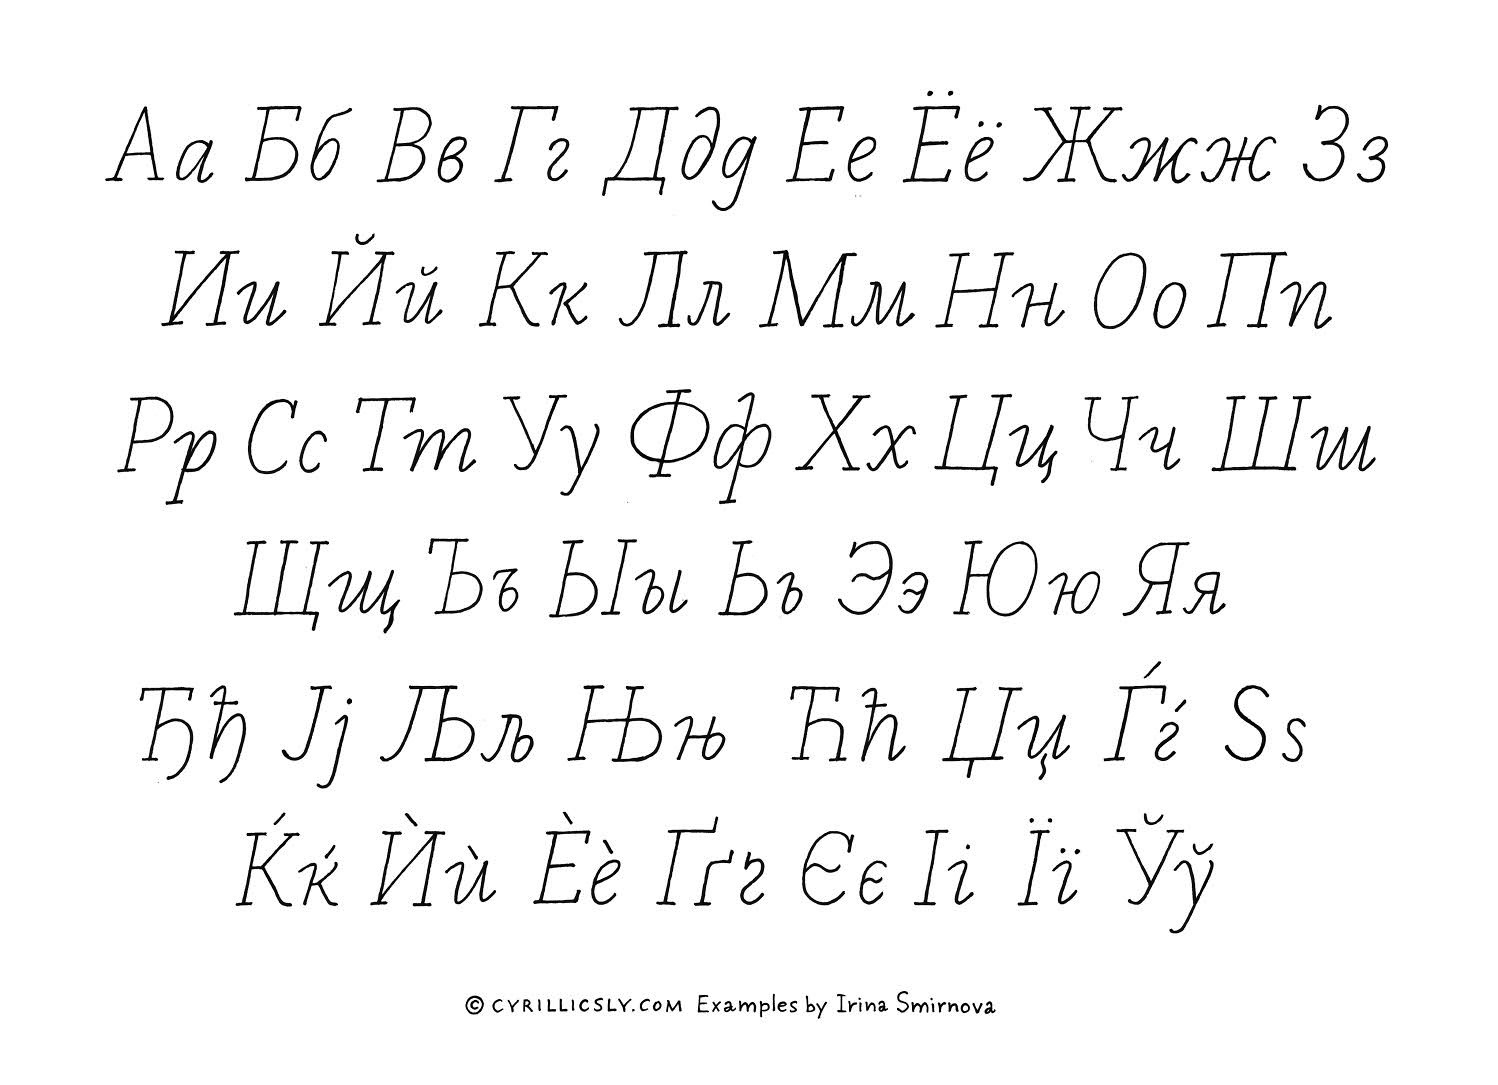 Cyrillic basic construction. Examples by Irina Smirnova